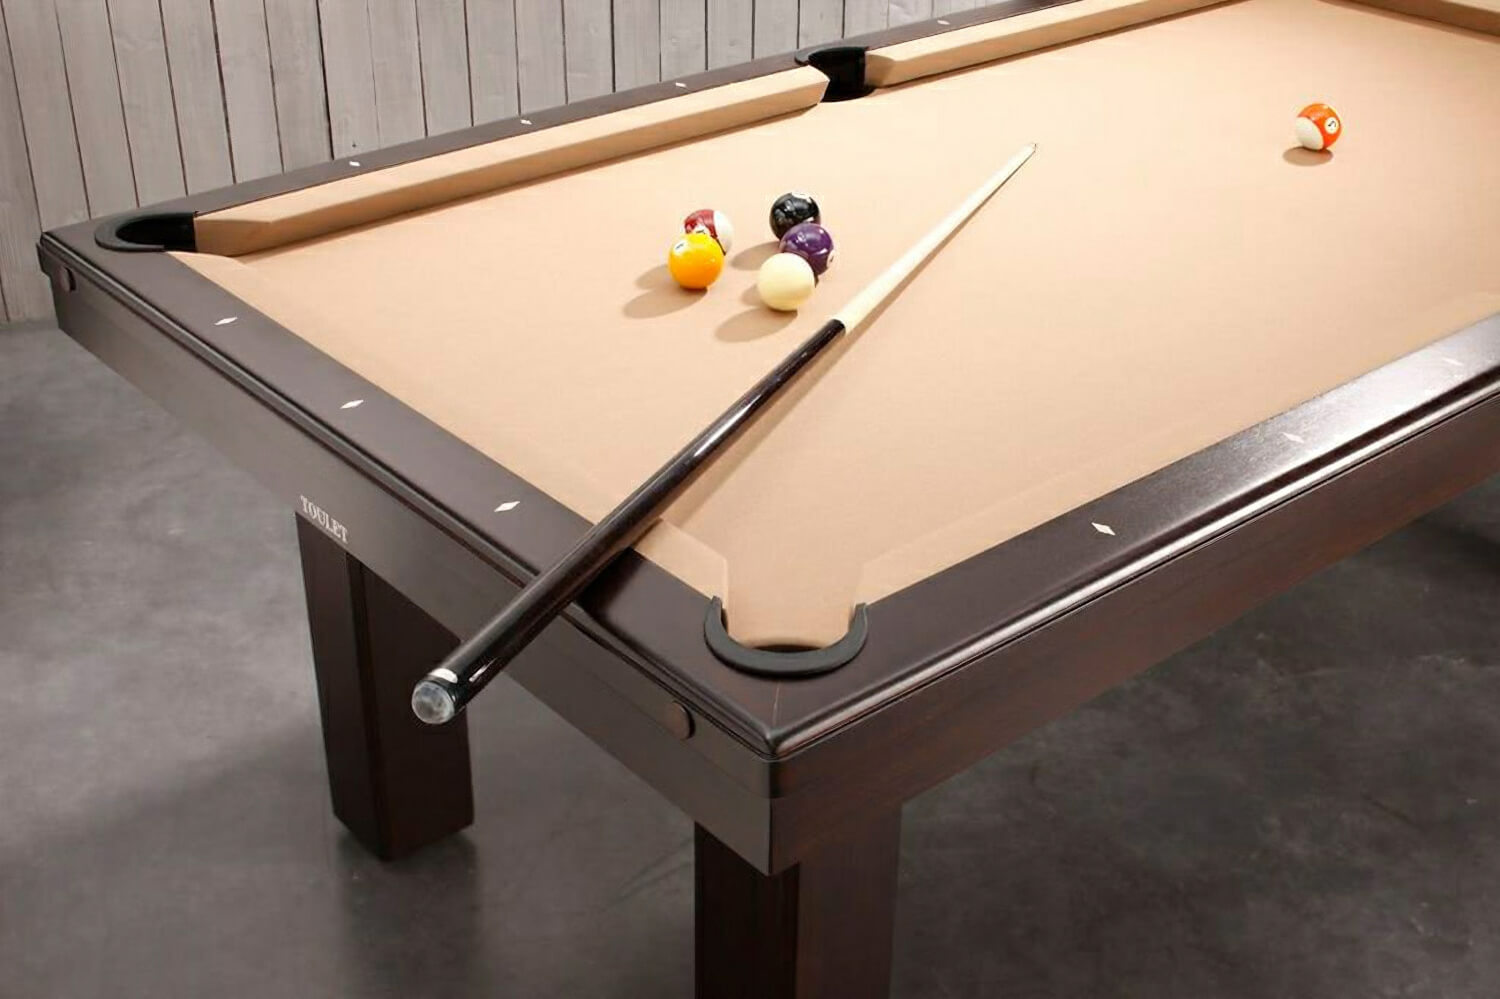 Billard toulet broadway snooker table 9 ft 10 ft for 10 foot snooker table